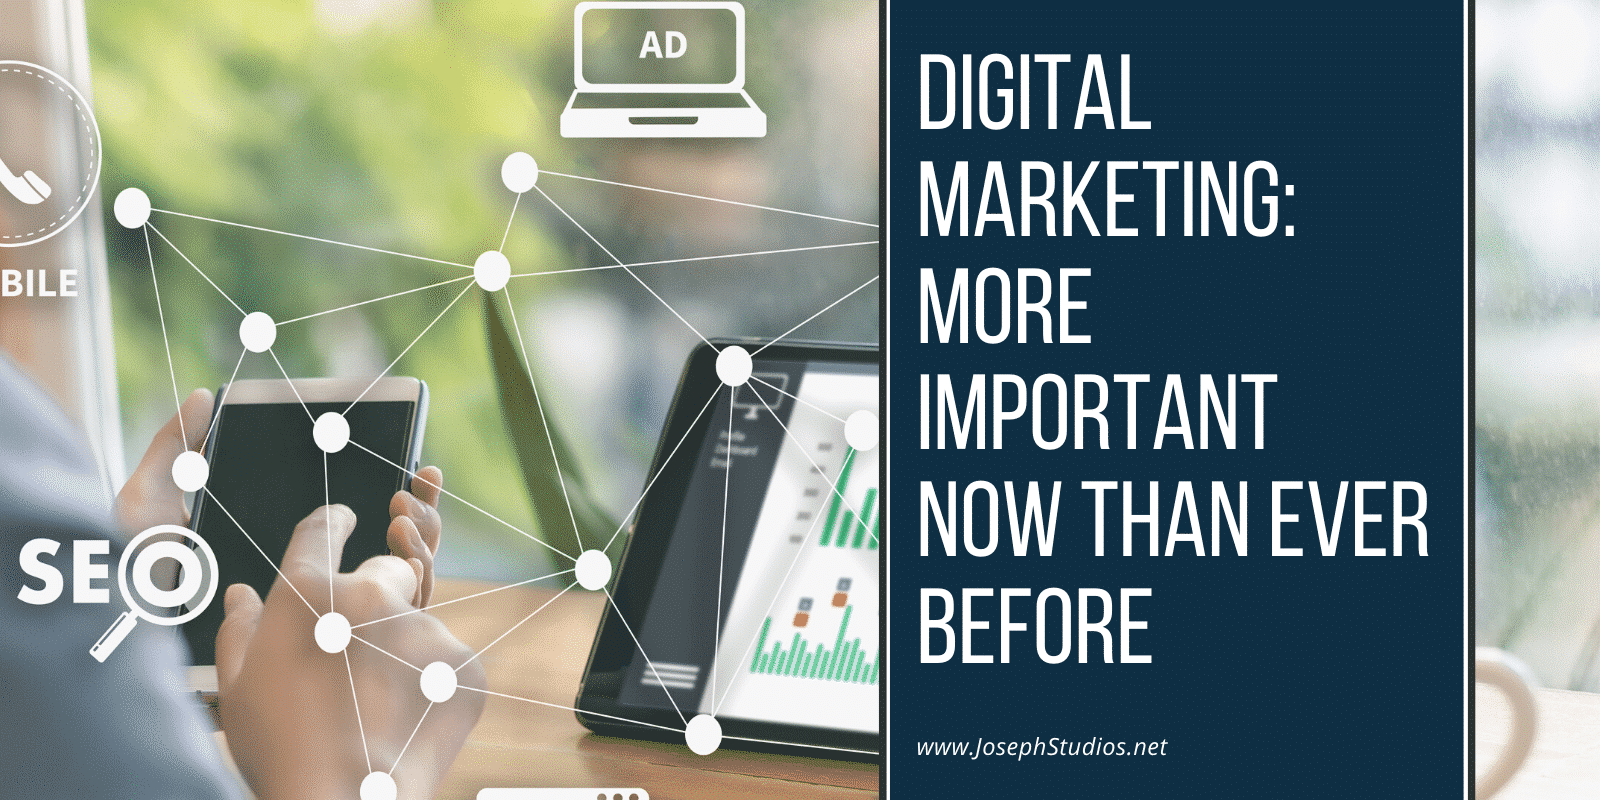 Digital Marketing Is Now Important Than Ever